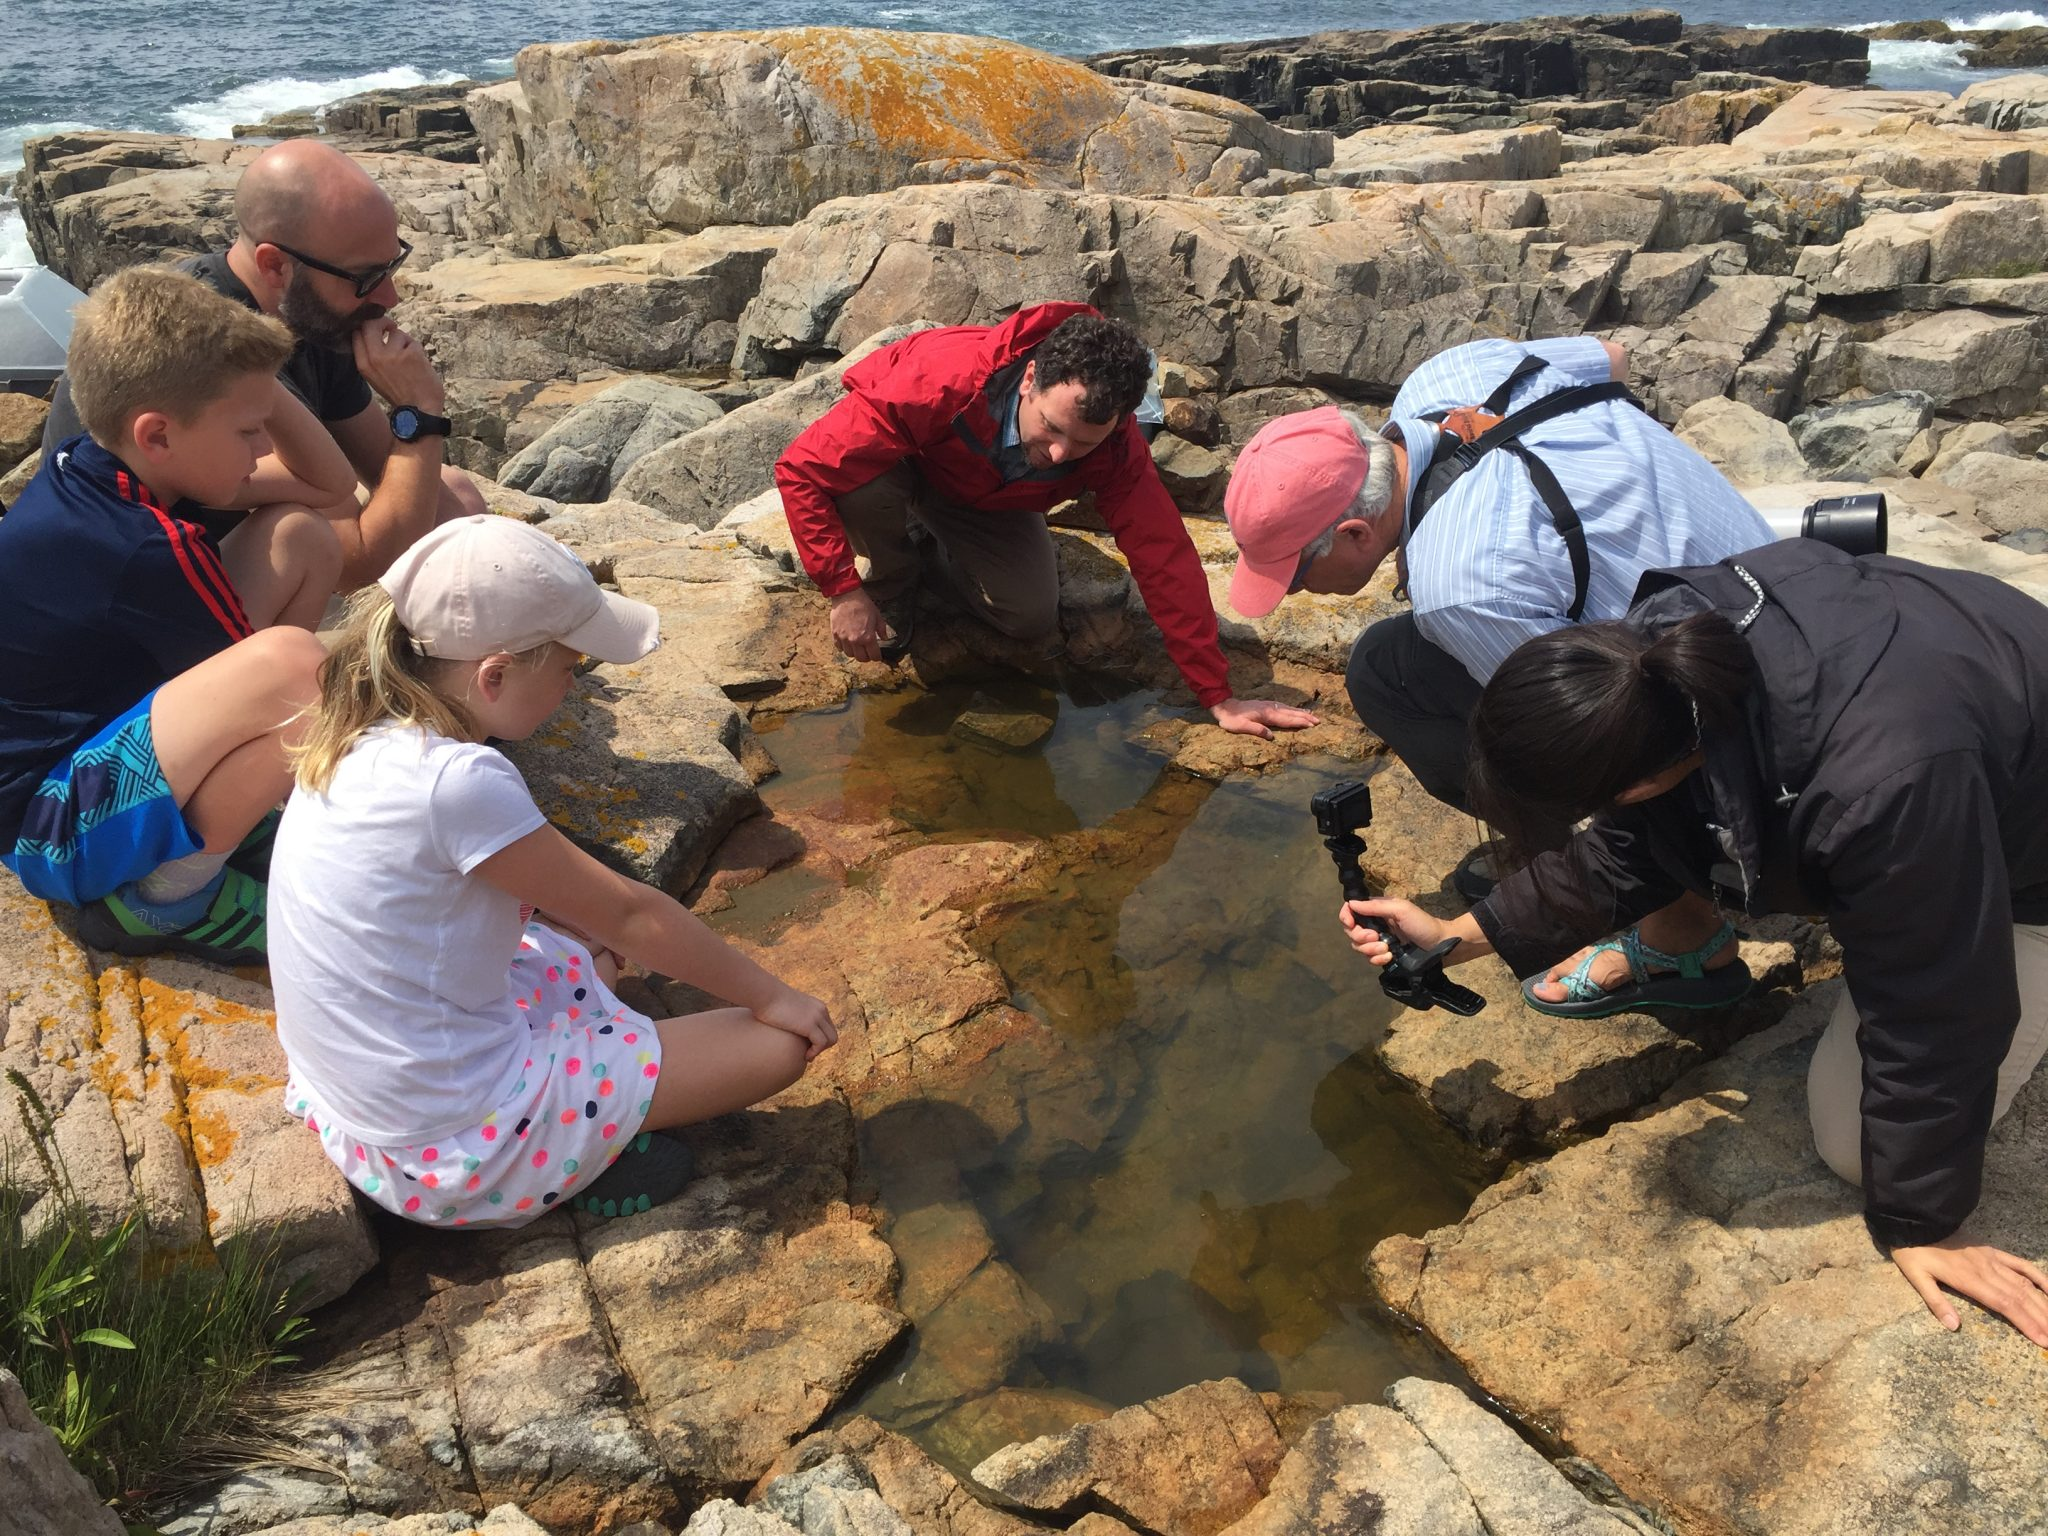 Chris Explaining Rock Pools To Park Visitors